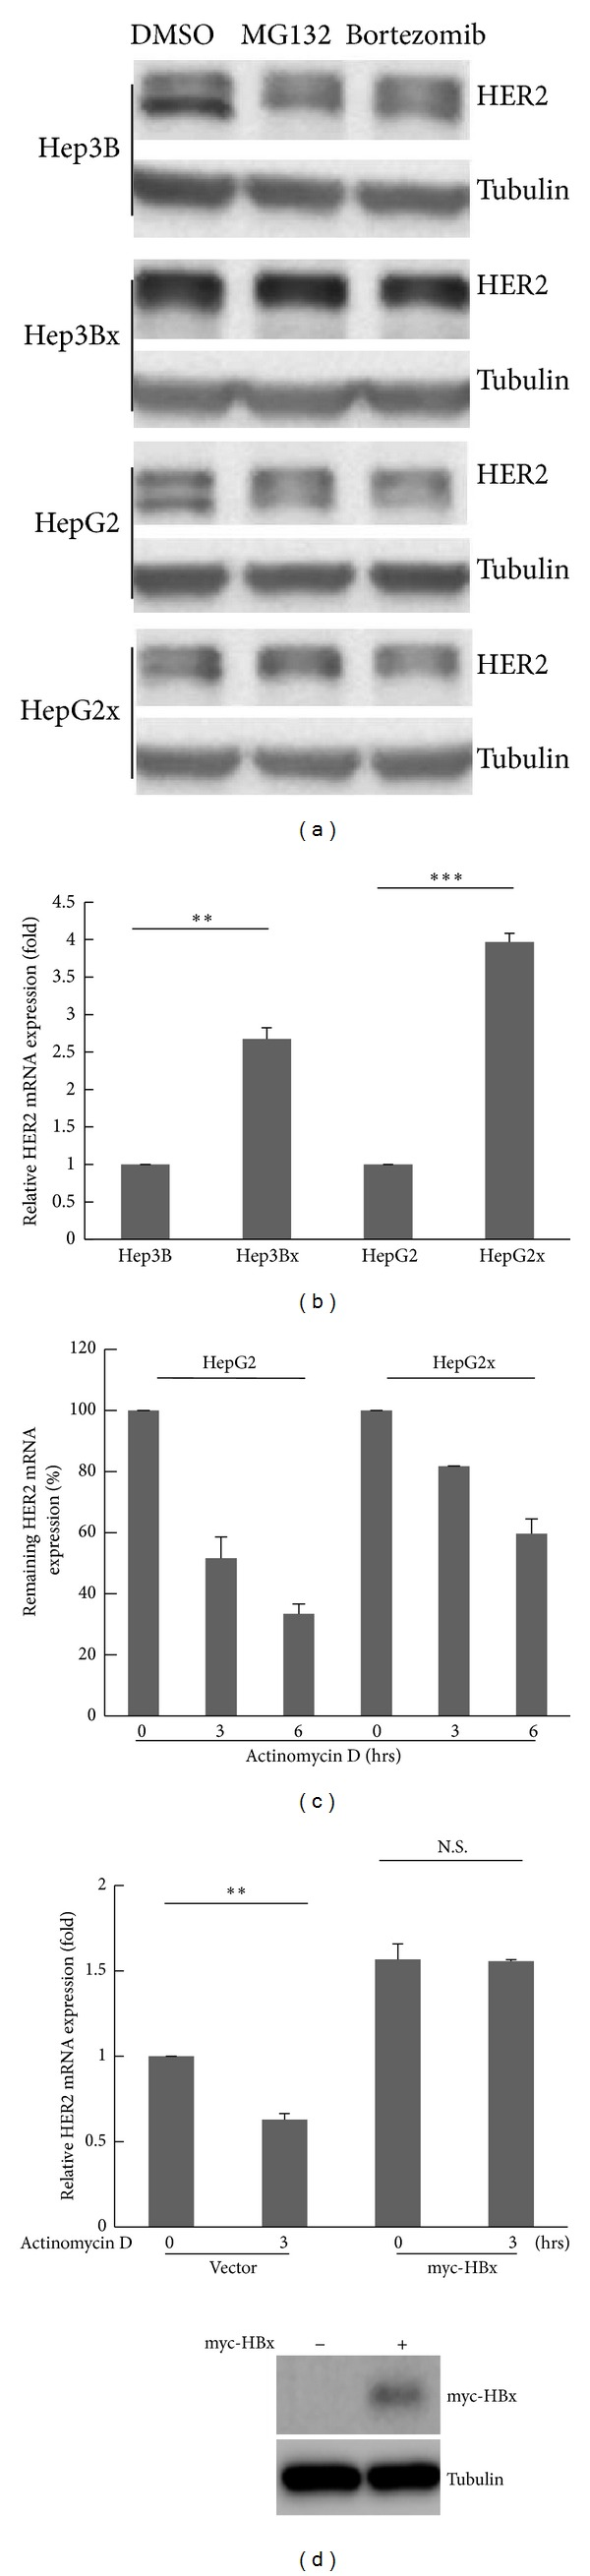 The HER2 mRNA expression was stabilized in HBx-expressing HCC cells. (a) The two HBx-paired HCC cells were treated with proteasomal inhibitors (MG132 and bortezomib) for 24 hrs. The HER2 protein expression was analyzed by Western blot ( N = 3). (b) The HER2 mRNA expression in two HBx-paired HCC cells was examined by RT-qPCR. The HER2 mRNA expression was normalized to actin expression. Statistical analysis was performed by Student's t -test. ** P